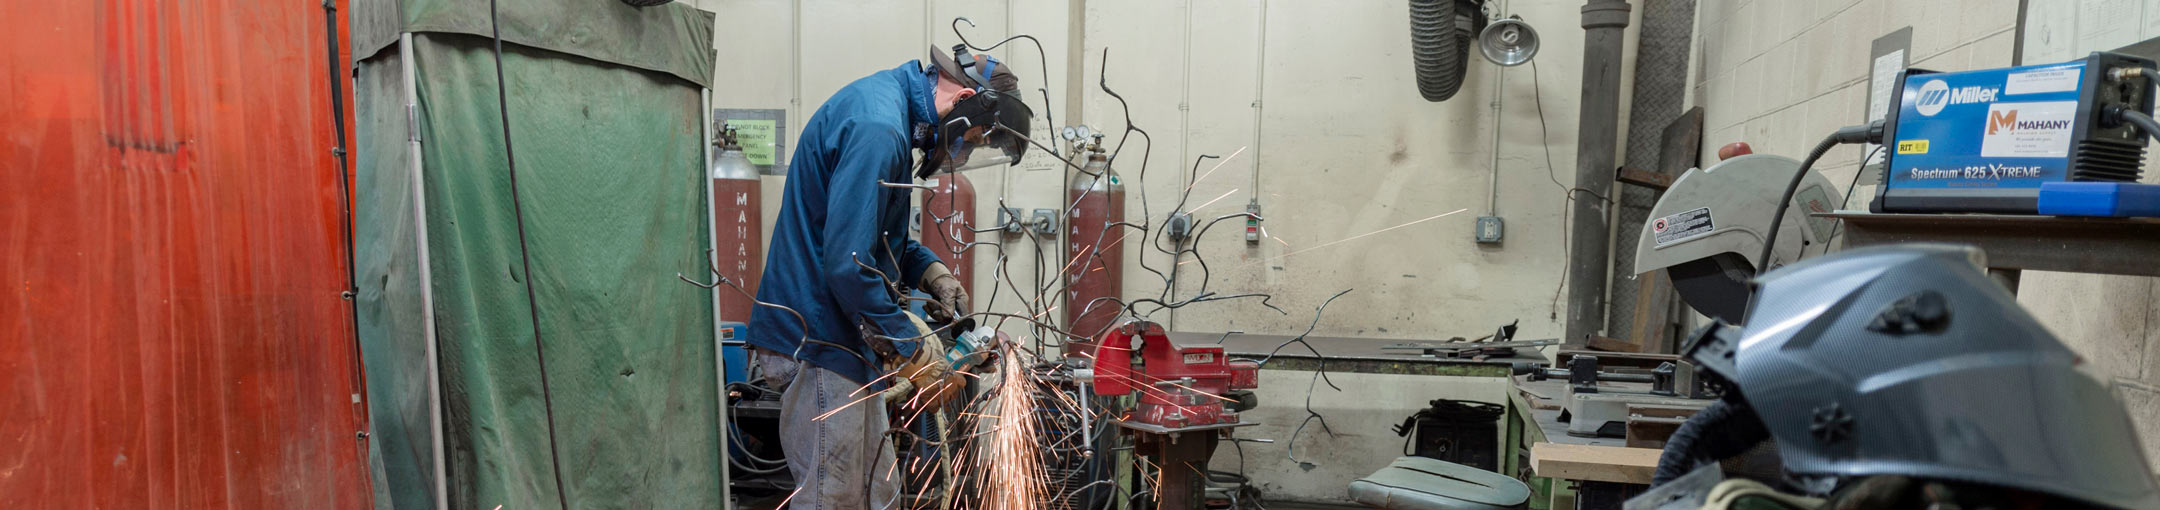 Student creates sparks from grinding a tree-like metal sculpture